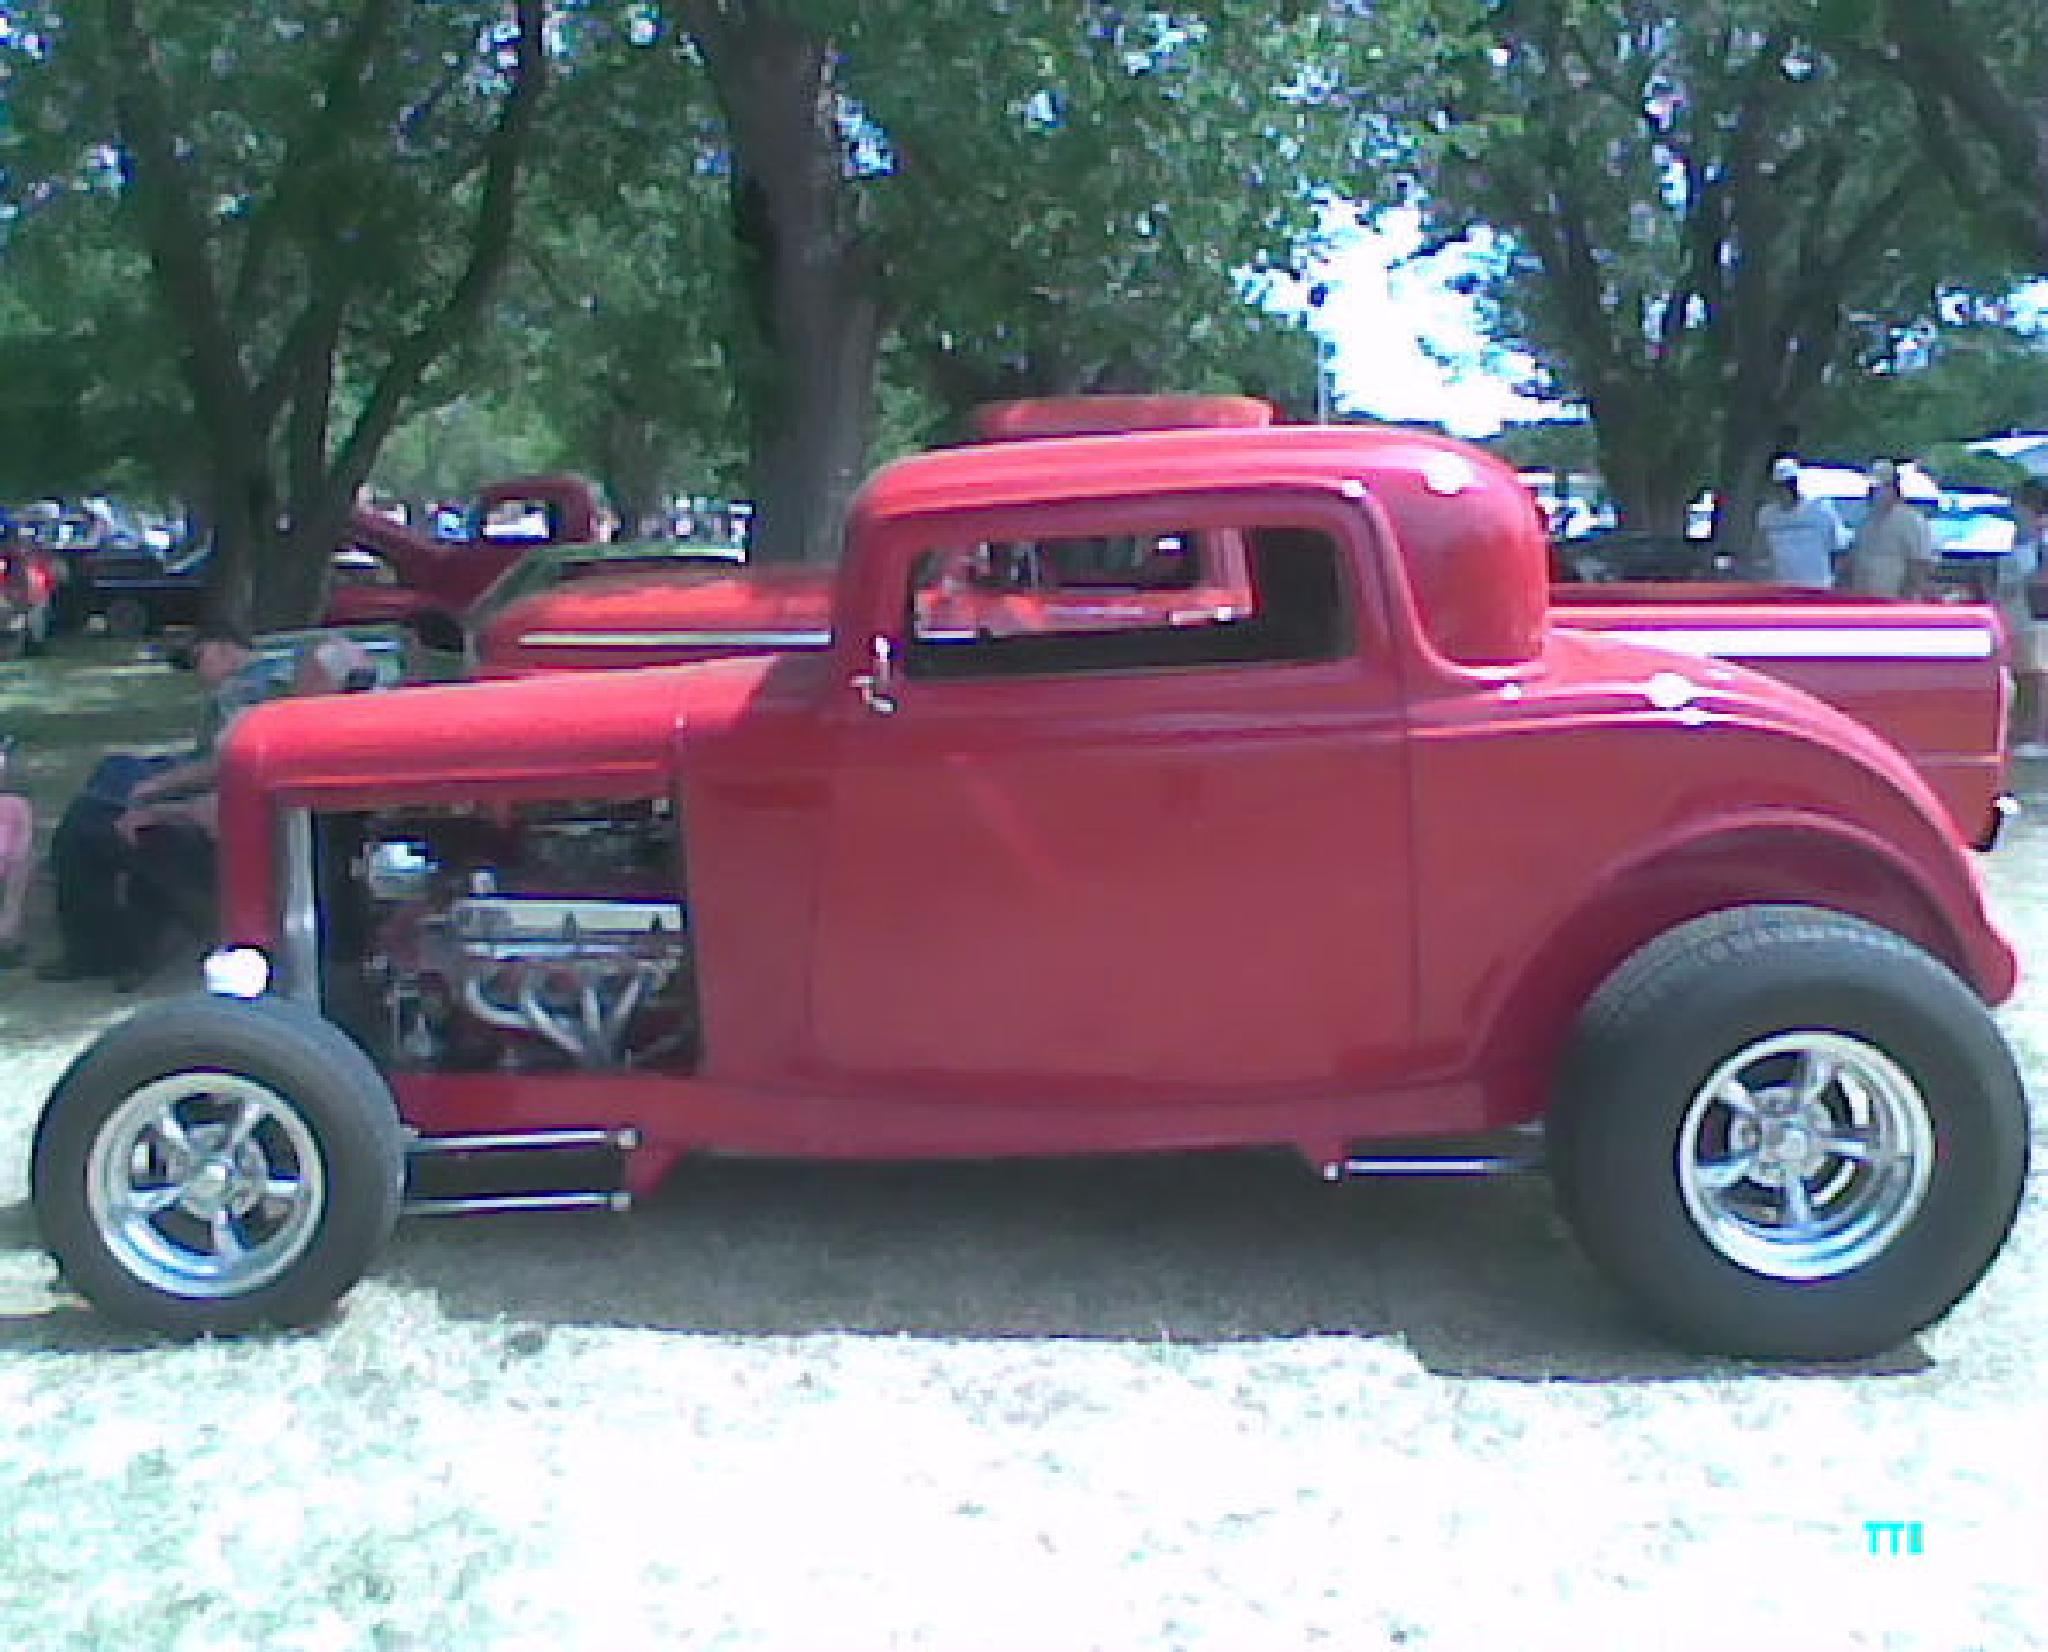 Red Coupe by tammy.jacksonnyman